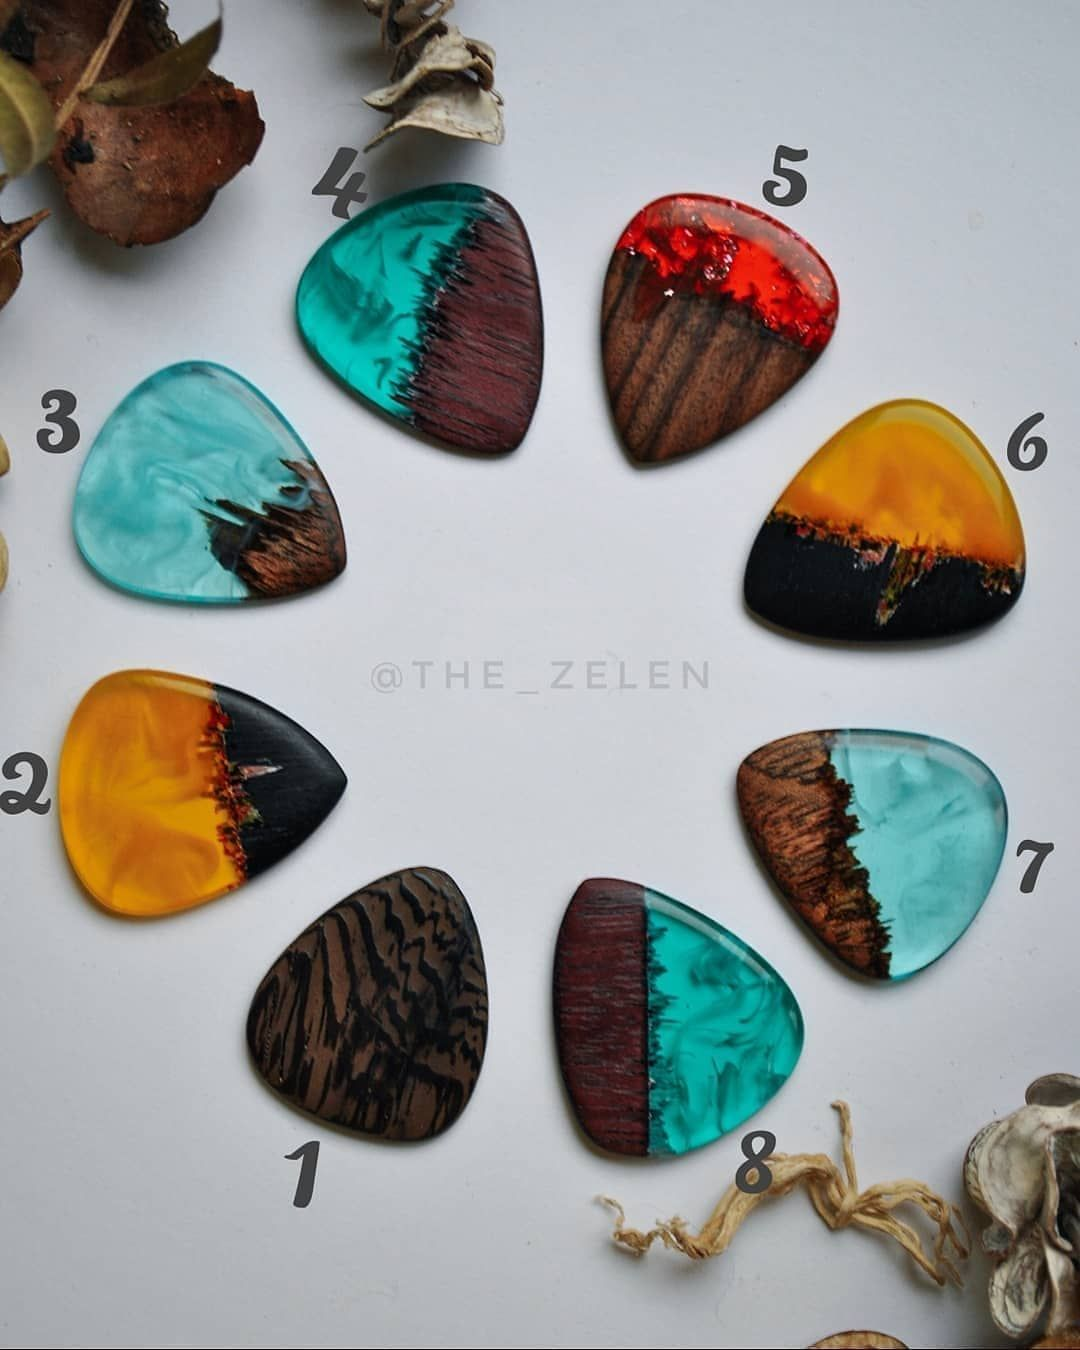 Epoxy Diy Tutorials On Instagram Which Of These Guitar Picks By The Zelen Do You Like The Most Pi Guitar Picks Diy Guitar Pick Jewelry Guitar Picks